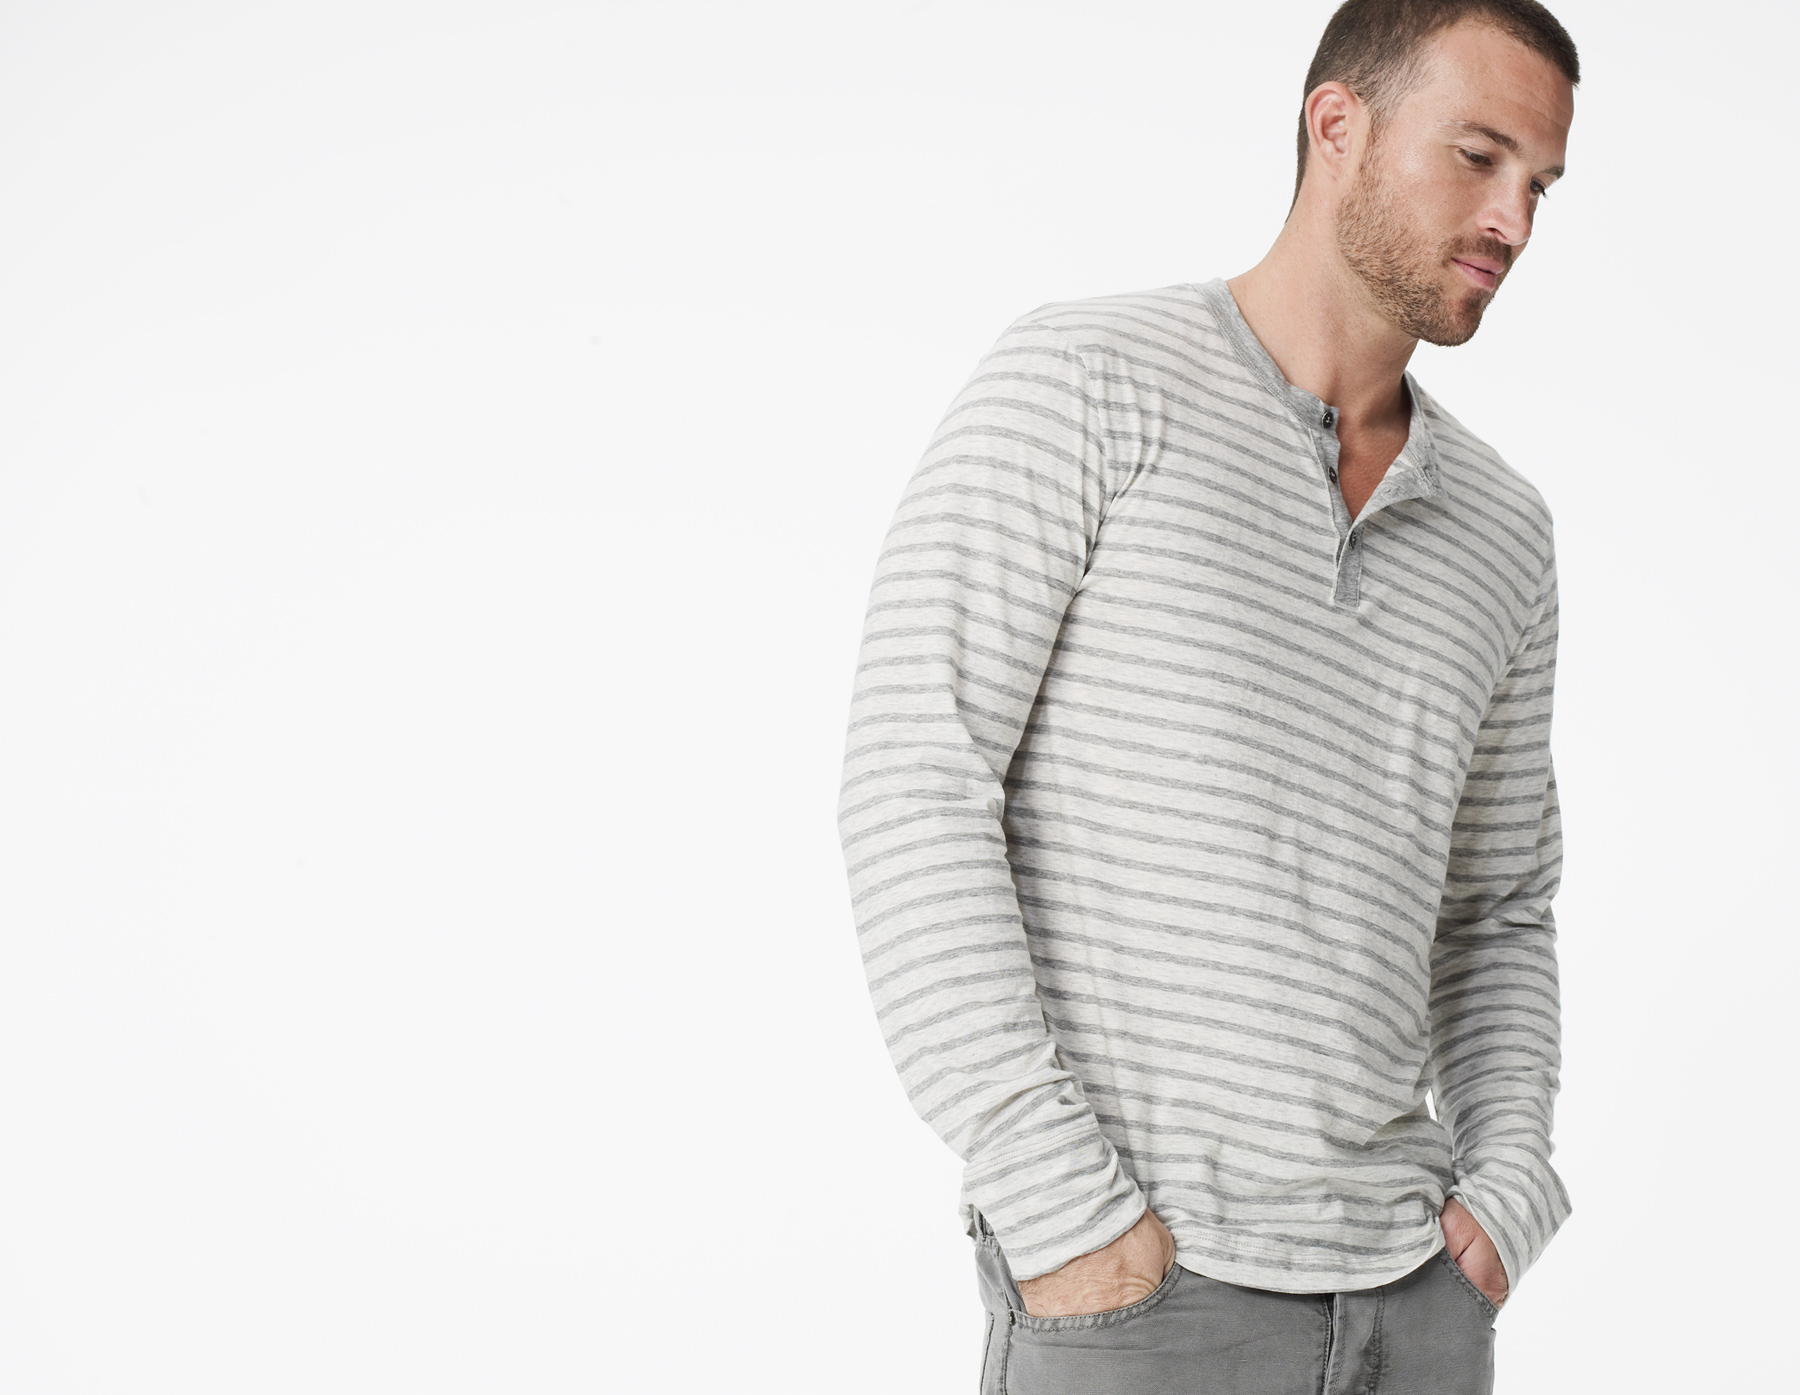 Lyst james perse striped henley in gray for men for James perse henley shirt